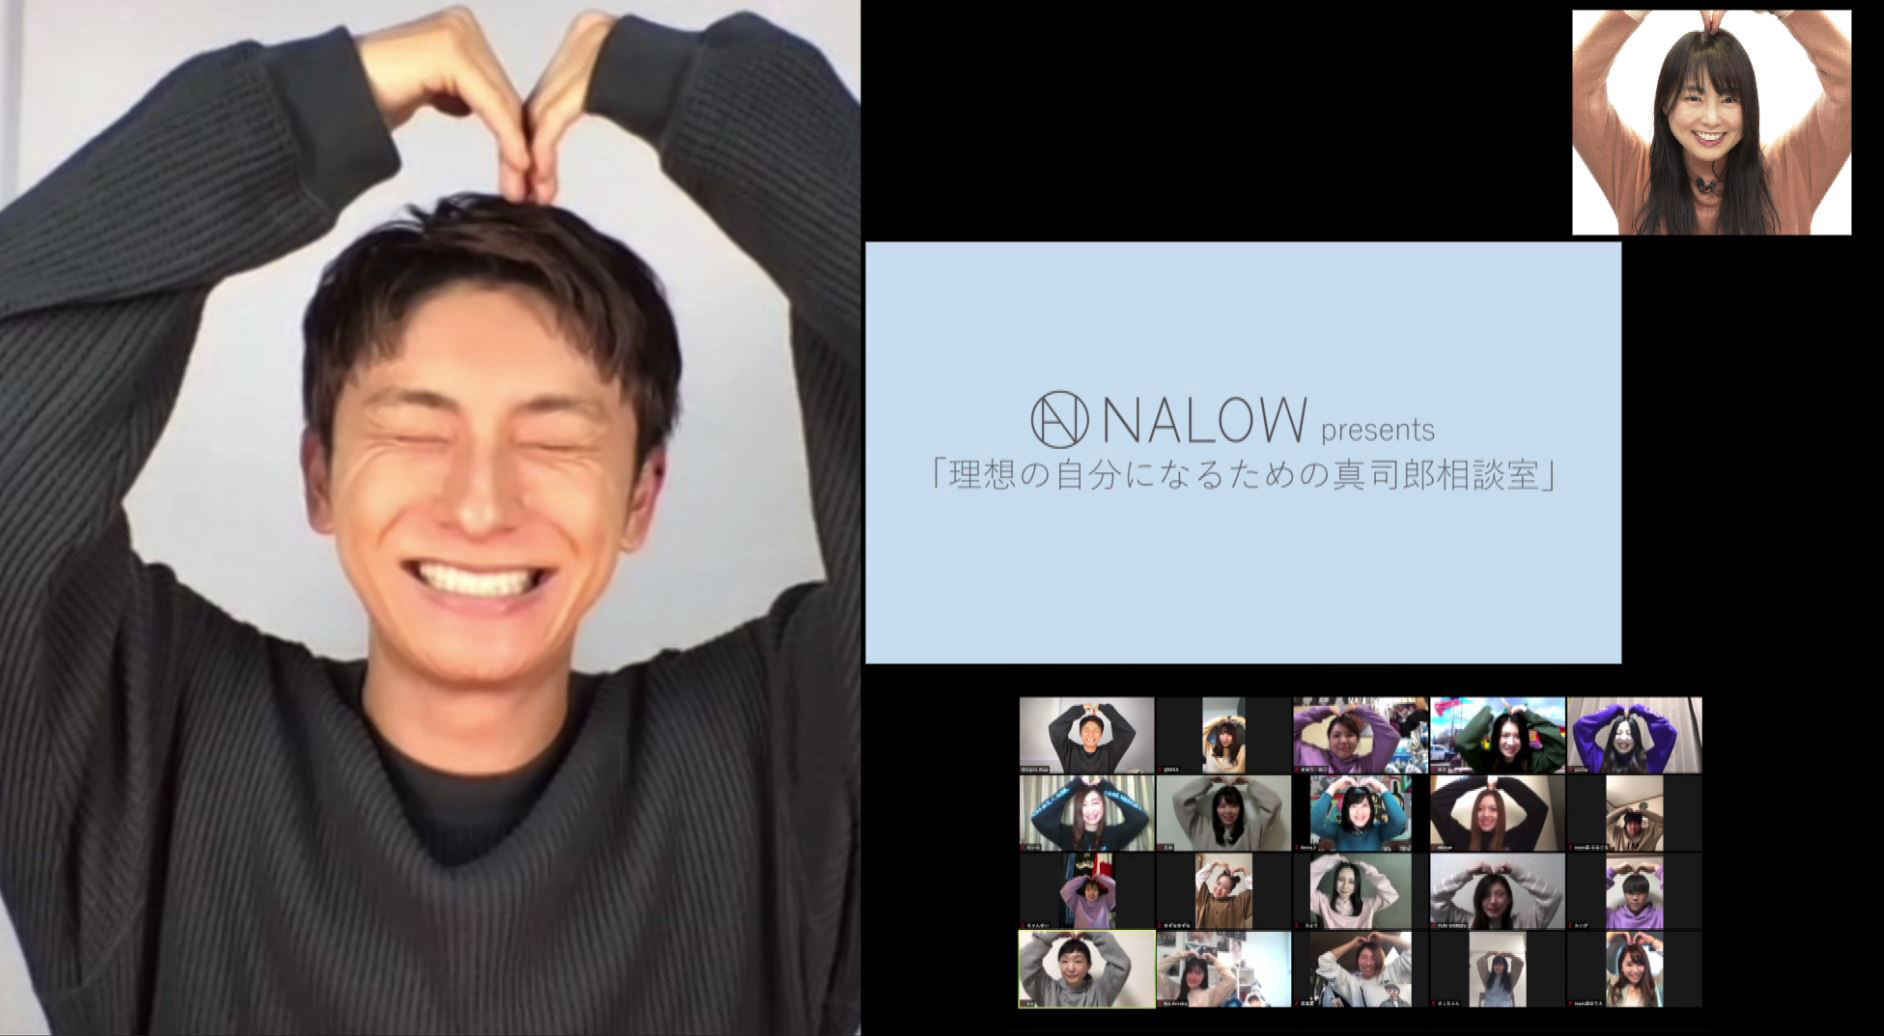 【NALOW×與 真司郎 (AAA)トーク&ギフトキャンペーン】